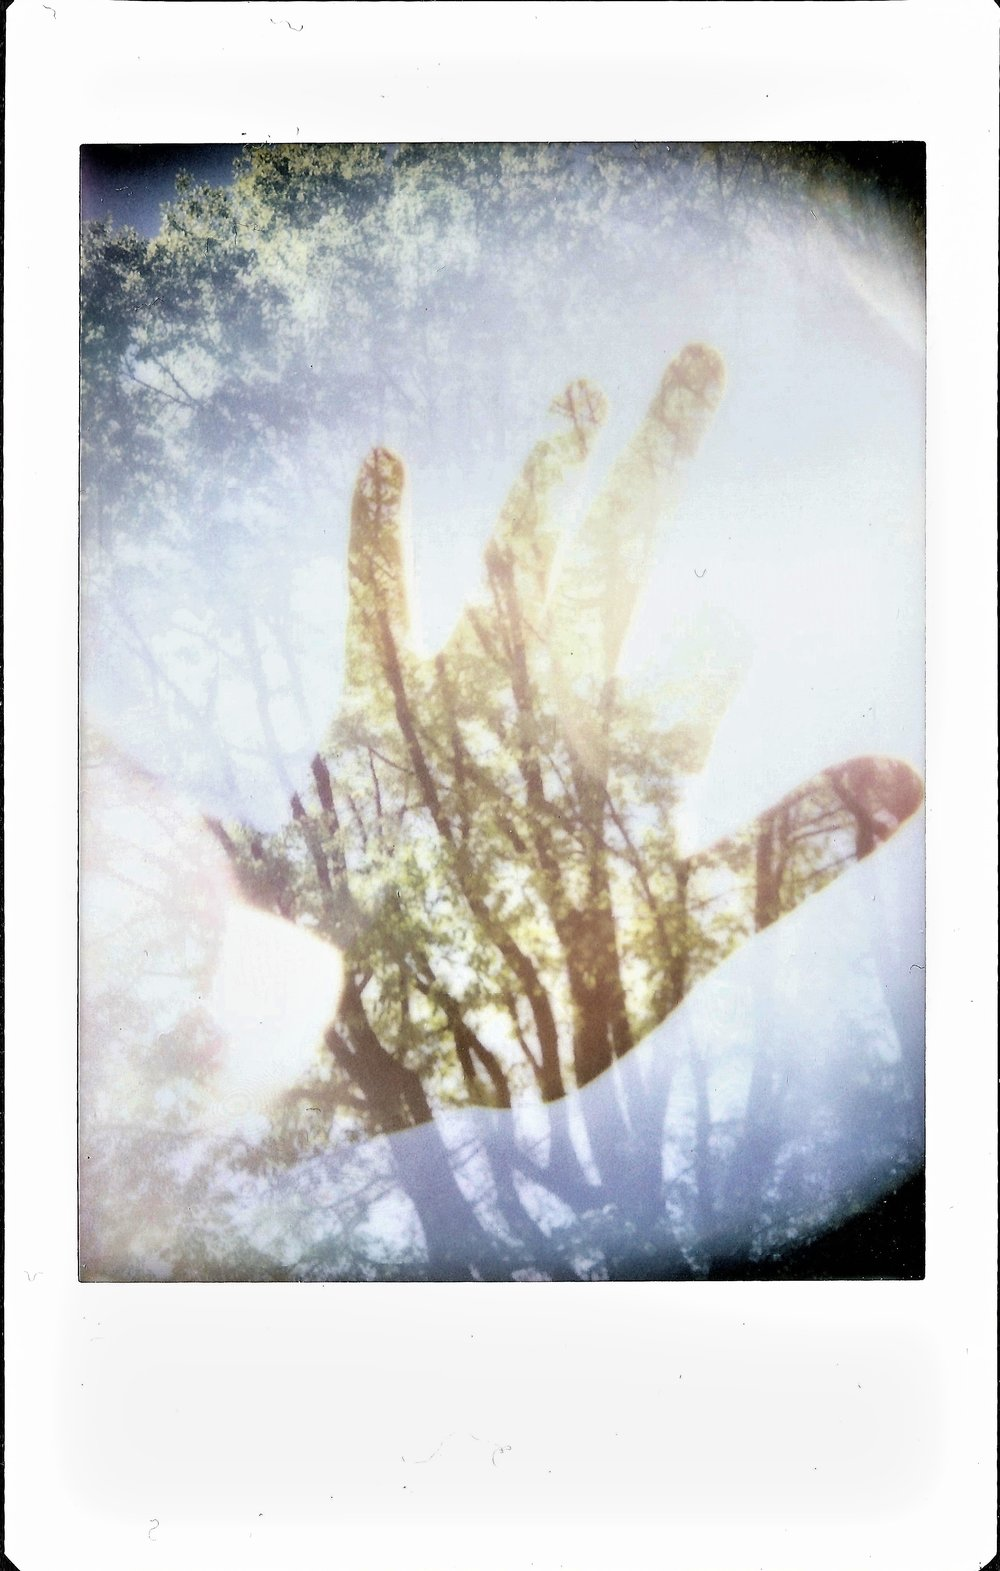 Touching Light | Instax Mini | Marina Inì